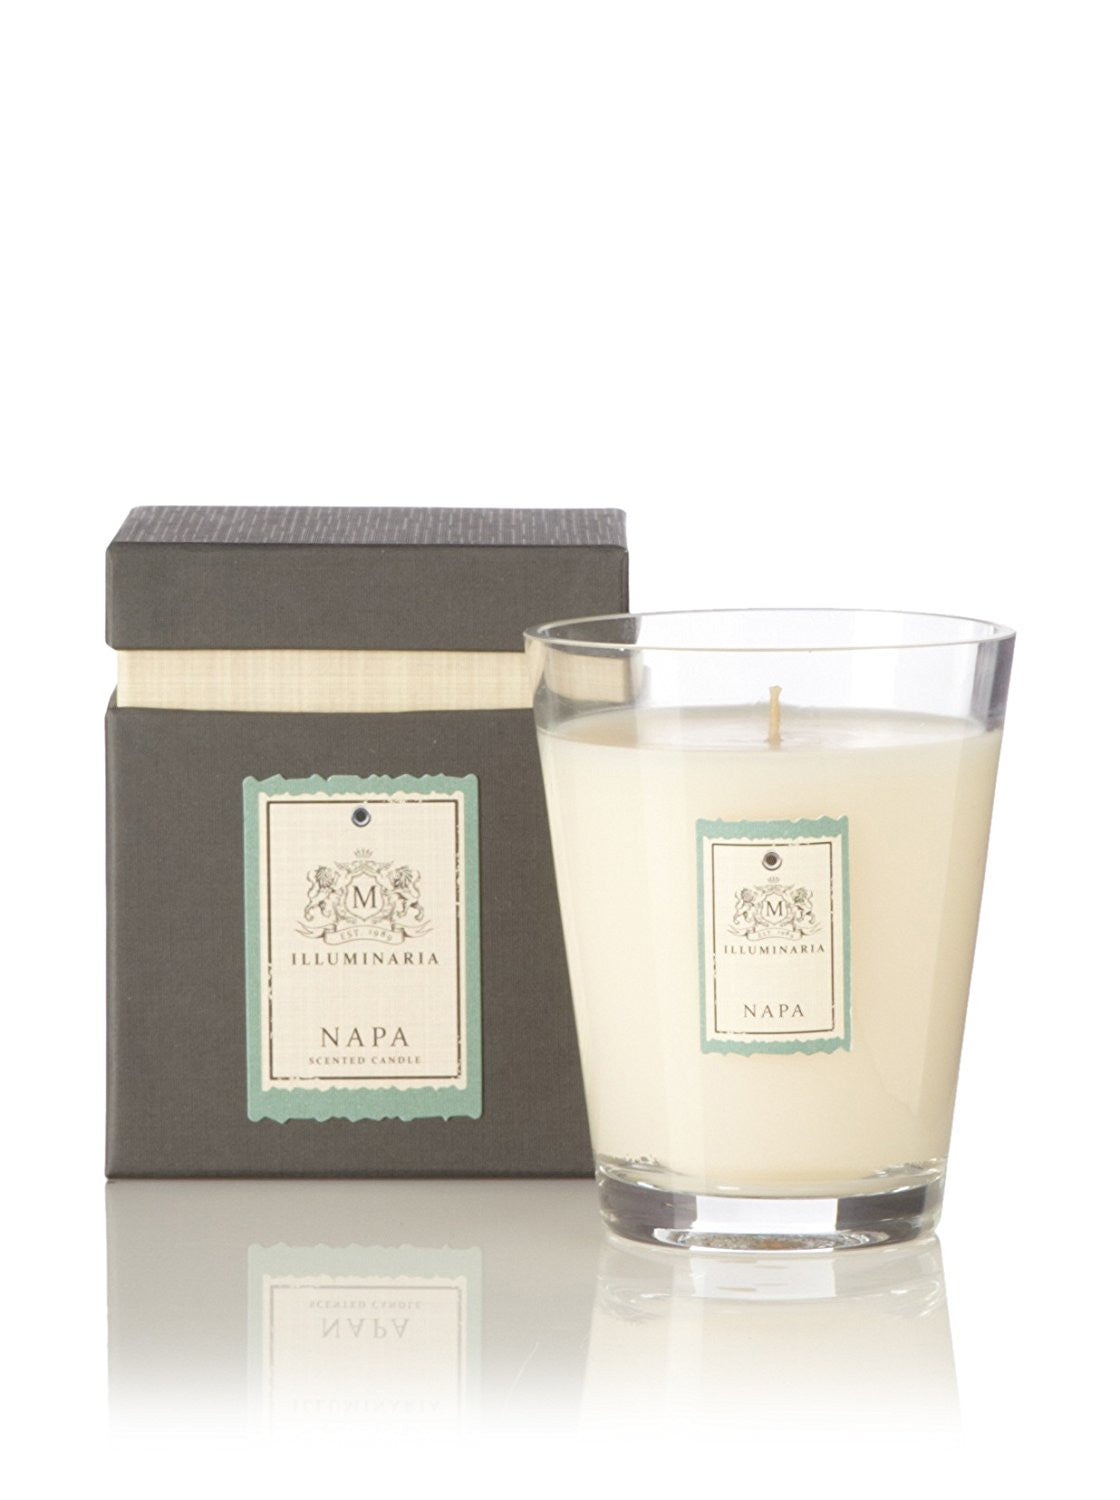 ZODAX ILLUMINARIA SCENTED CANDLE JAR IN GIFT BOX -  NAPA (4X5)